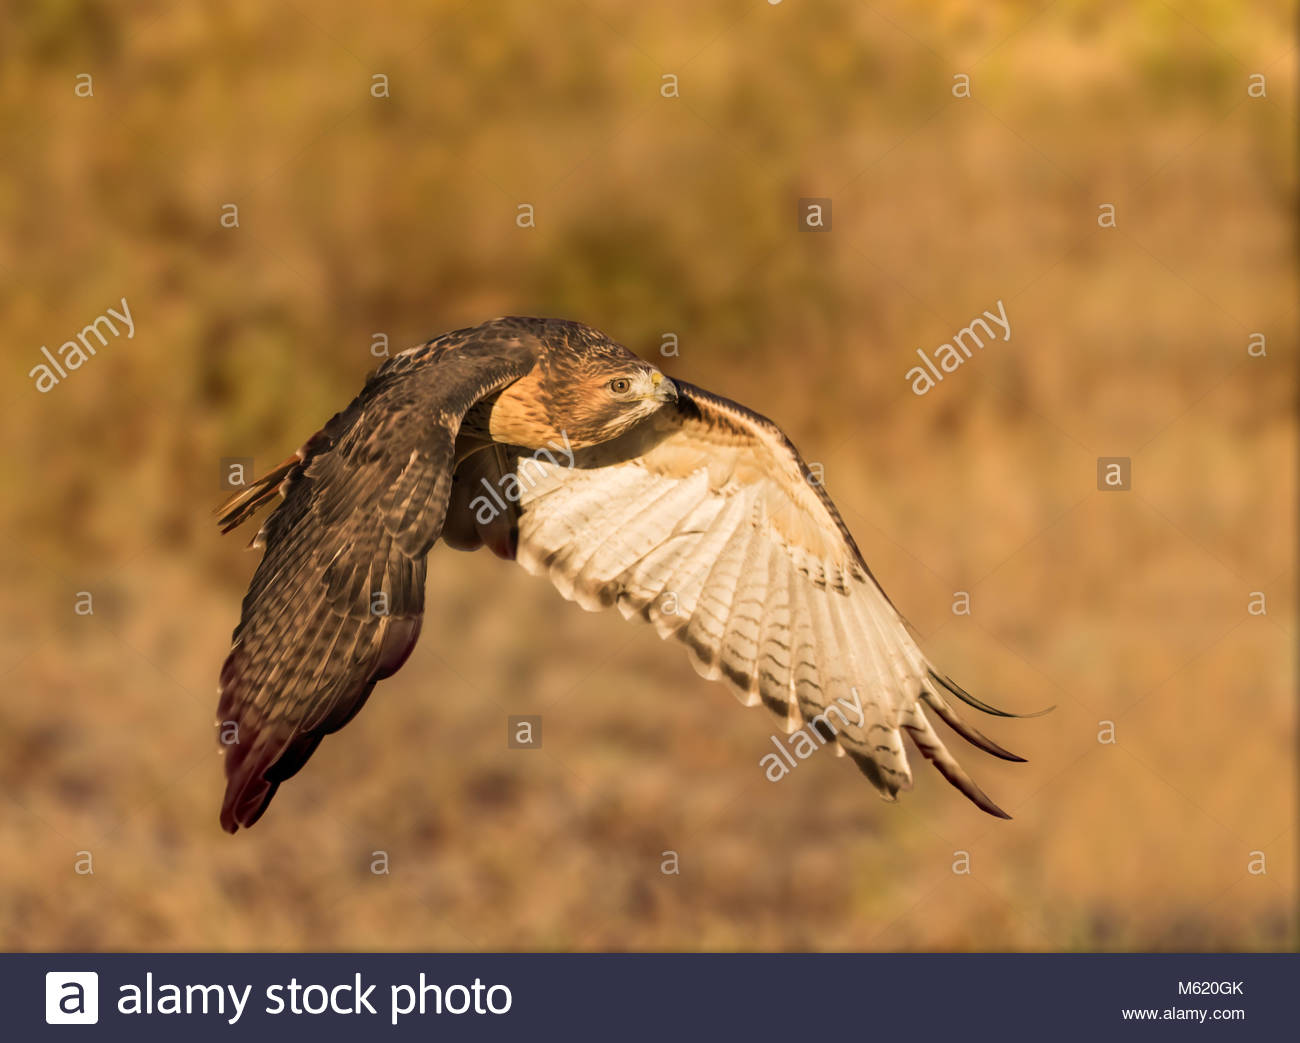 A red-tailed hawk in wings down formation flies in the early morning sunrise light. - Stock Image